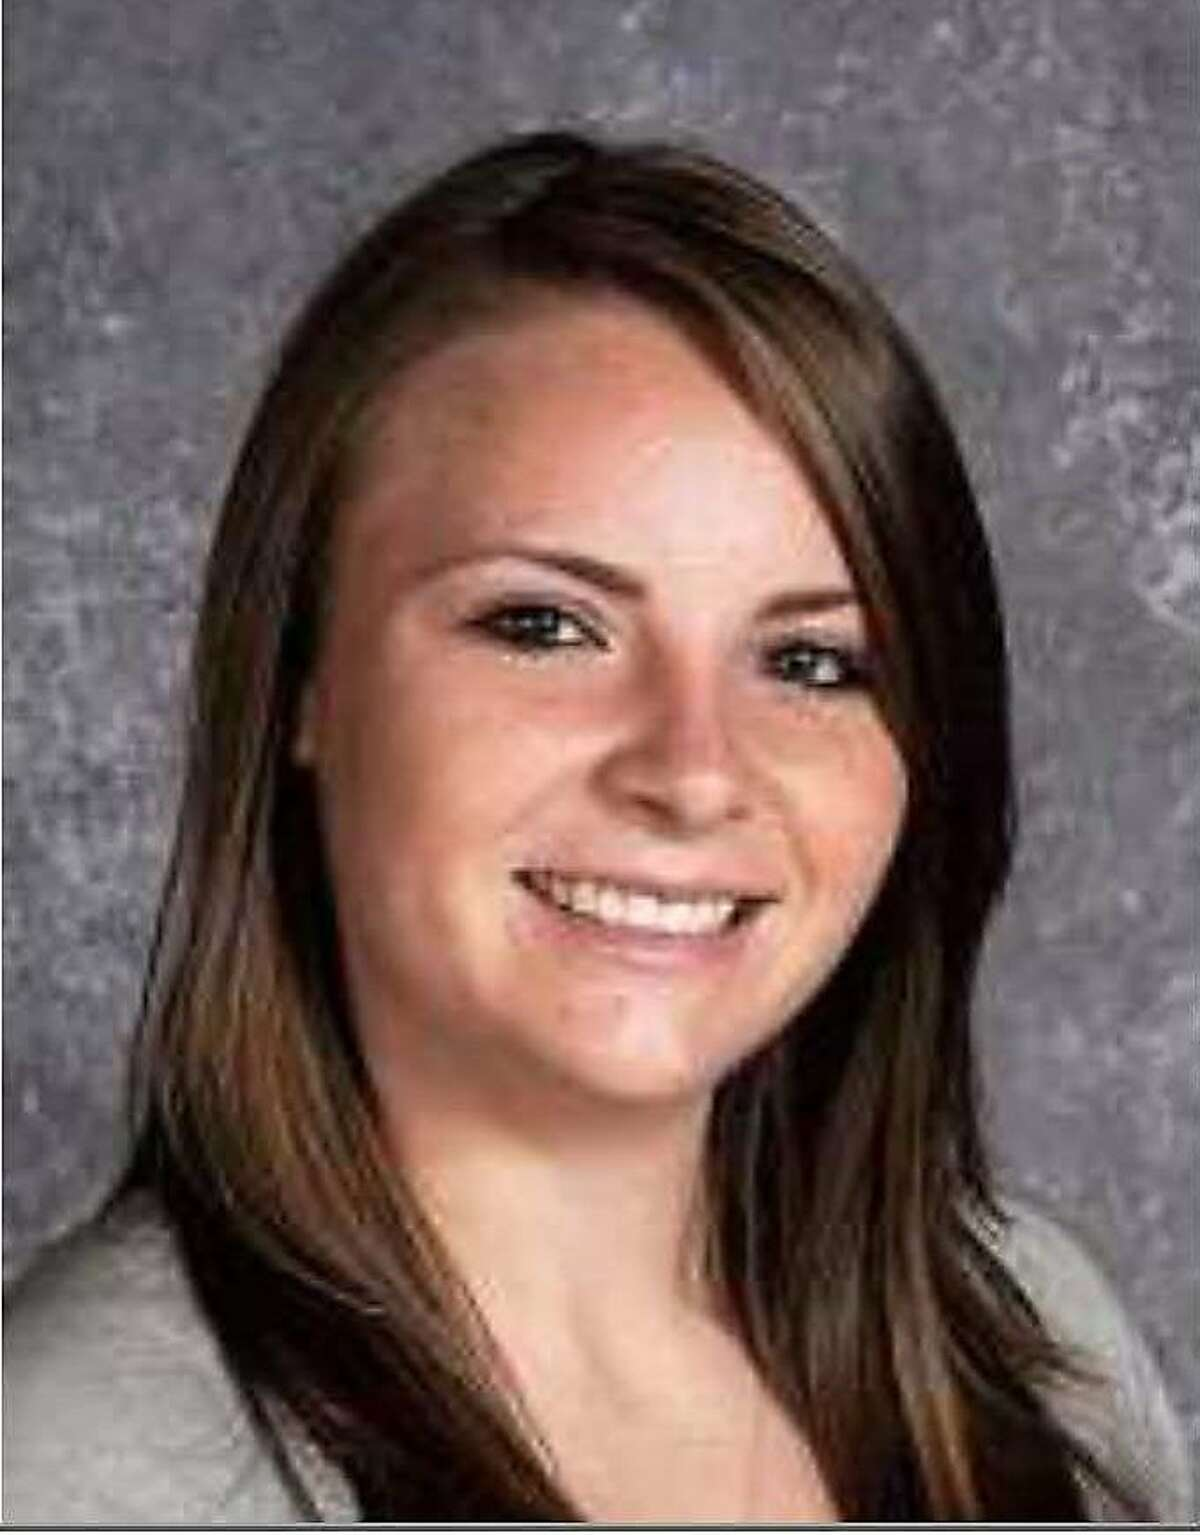 A yearbook photo from Rancho Cotate High School in Rohnert Park shows Ashley Donohoe, who died June 16, 2015 in a balcony collapse in Berkeley. She was 22.